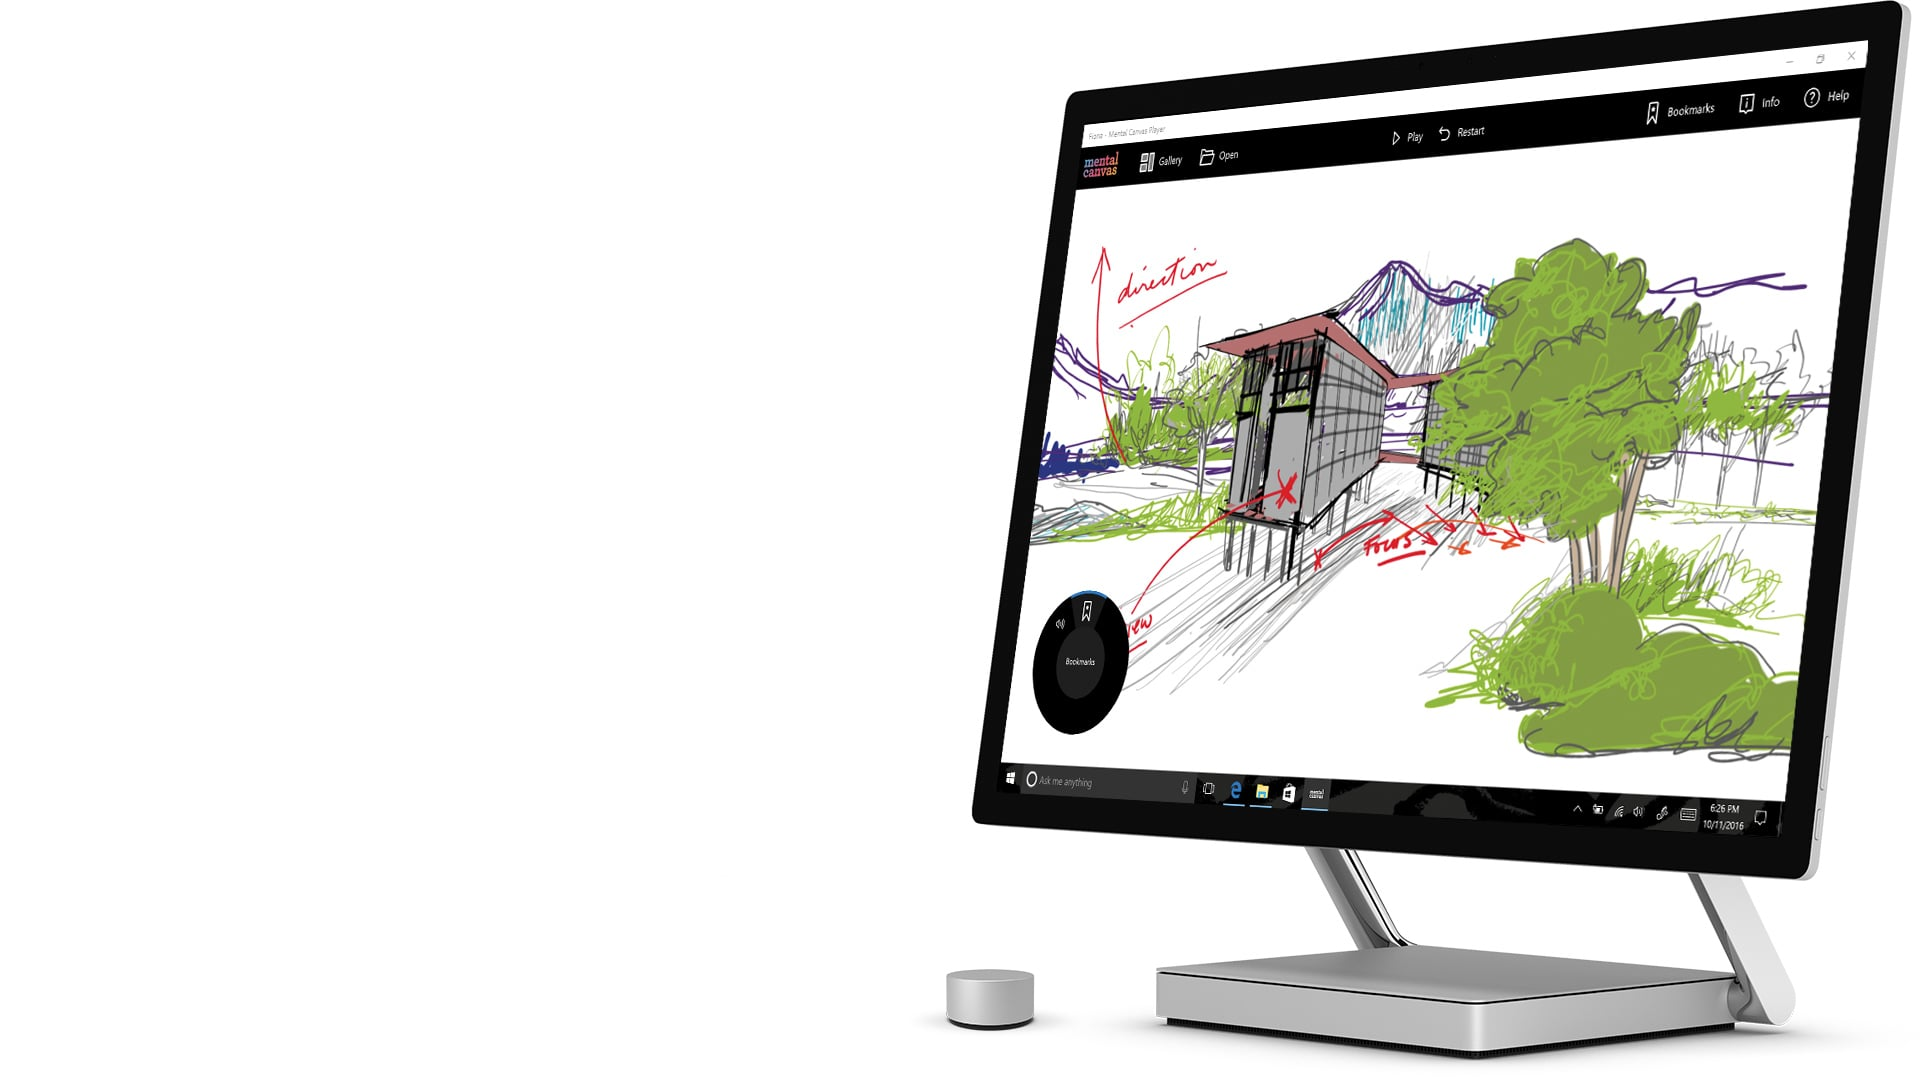 Surface Studio in desktop mode with Mental Canvas app open on screen and Surface dial on desk controlling an onscreen widget